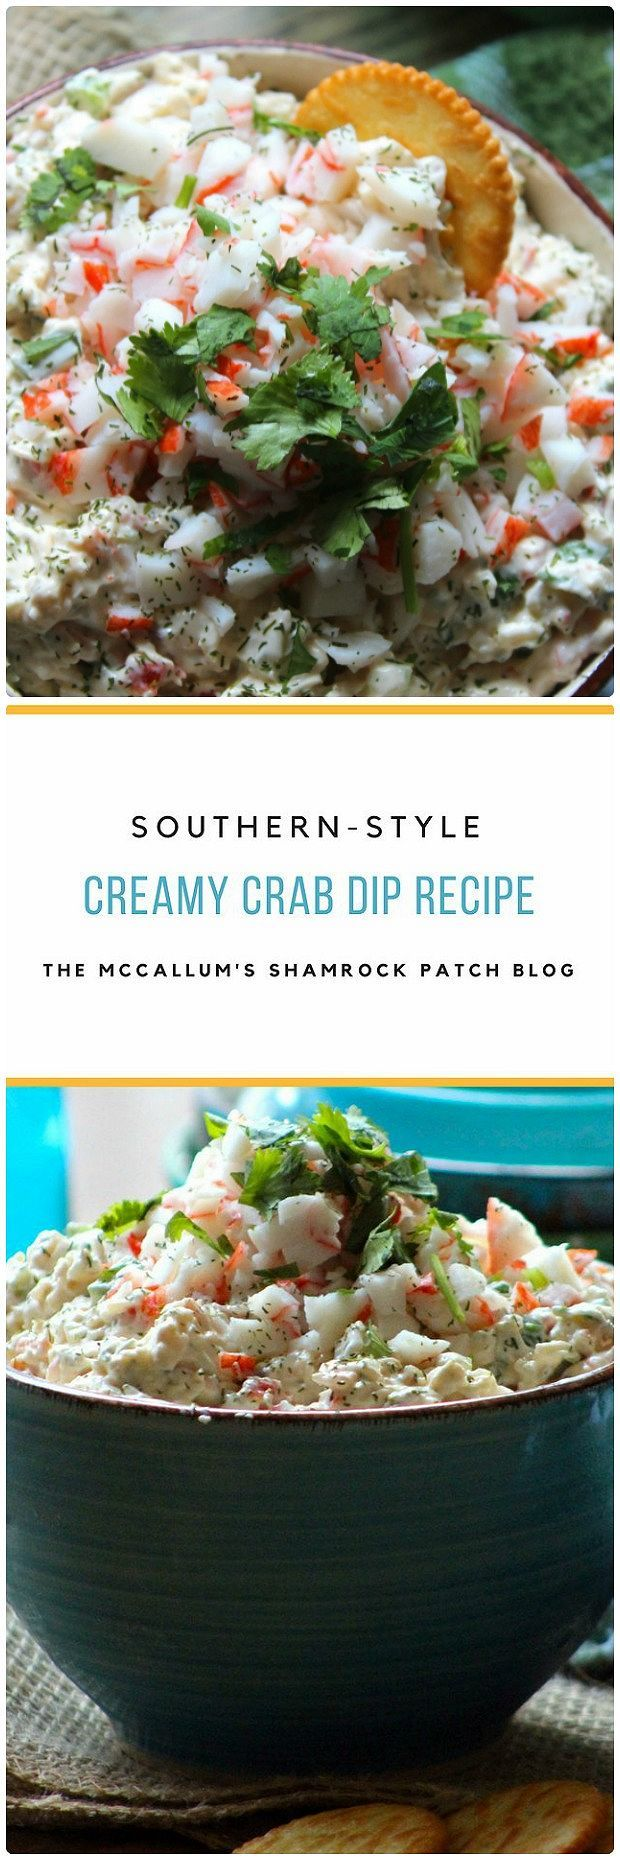 Southern Creamy Crab Dip is one of the snacking staples found in my house during late spring and early summer. Made with a big heap of traditional Southern love and delicious tasting ingredients; s…